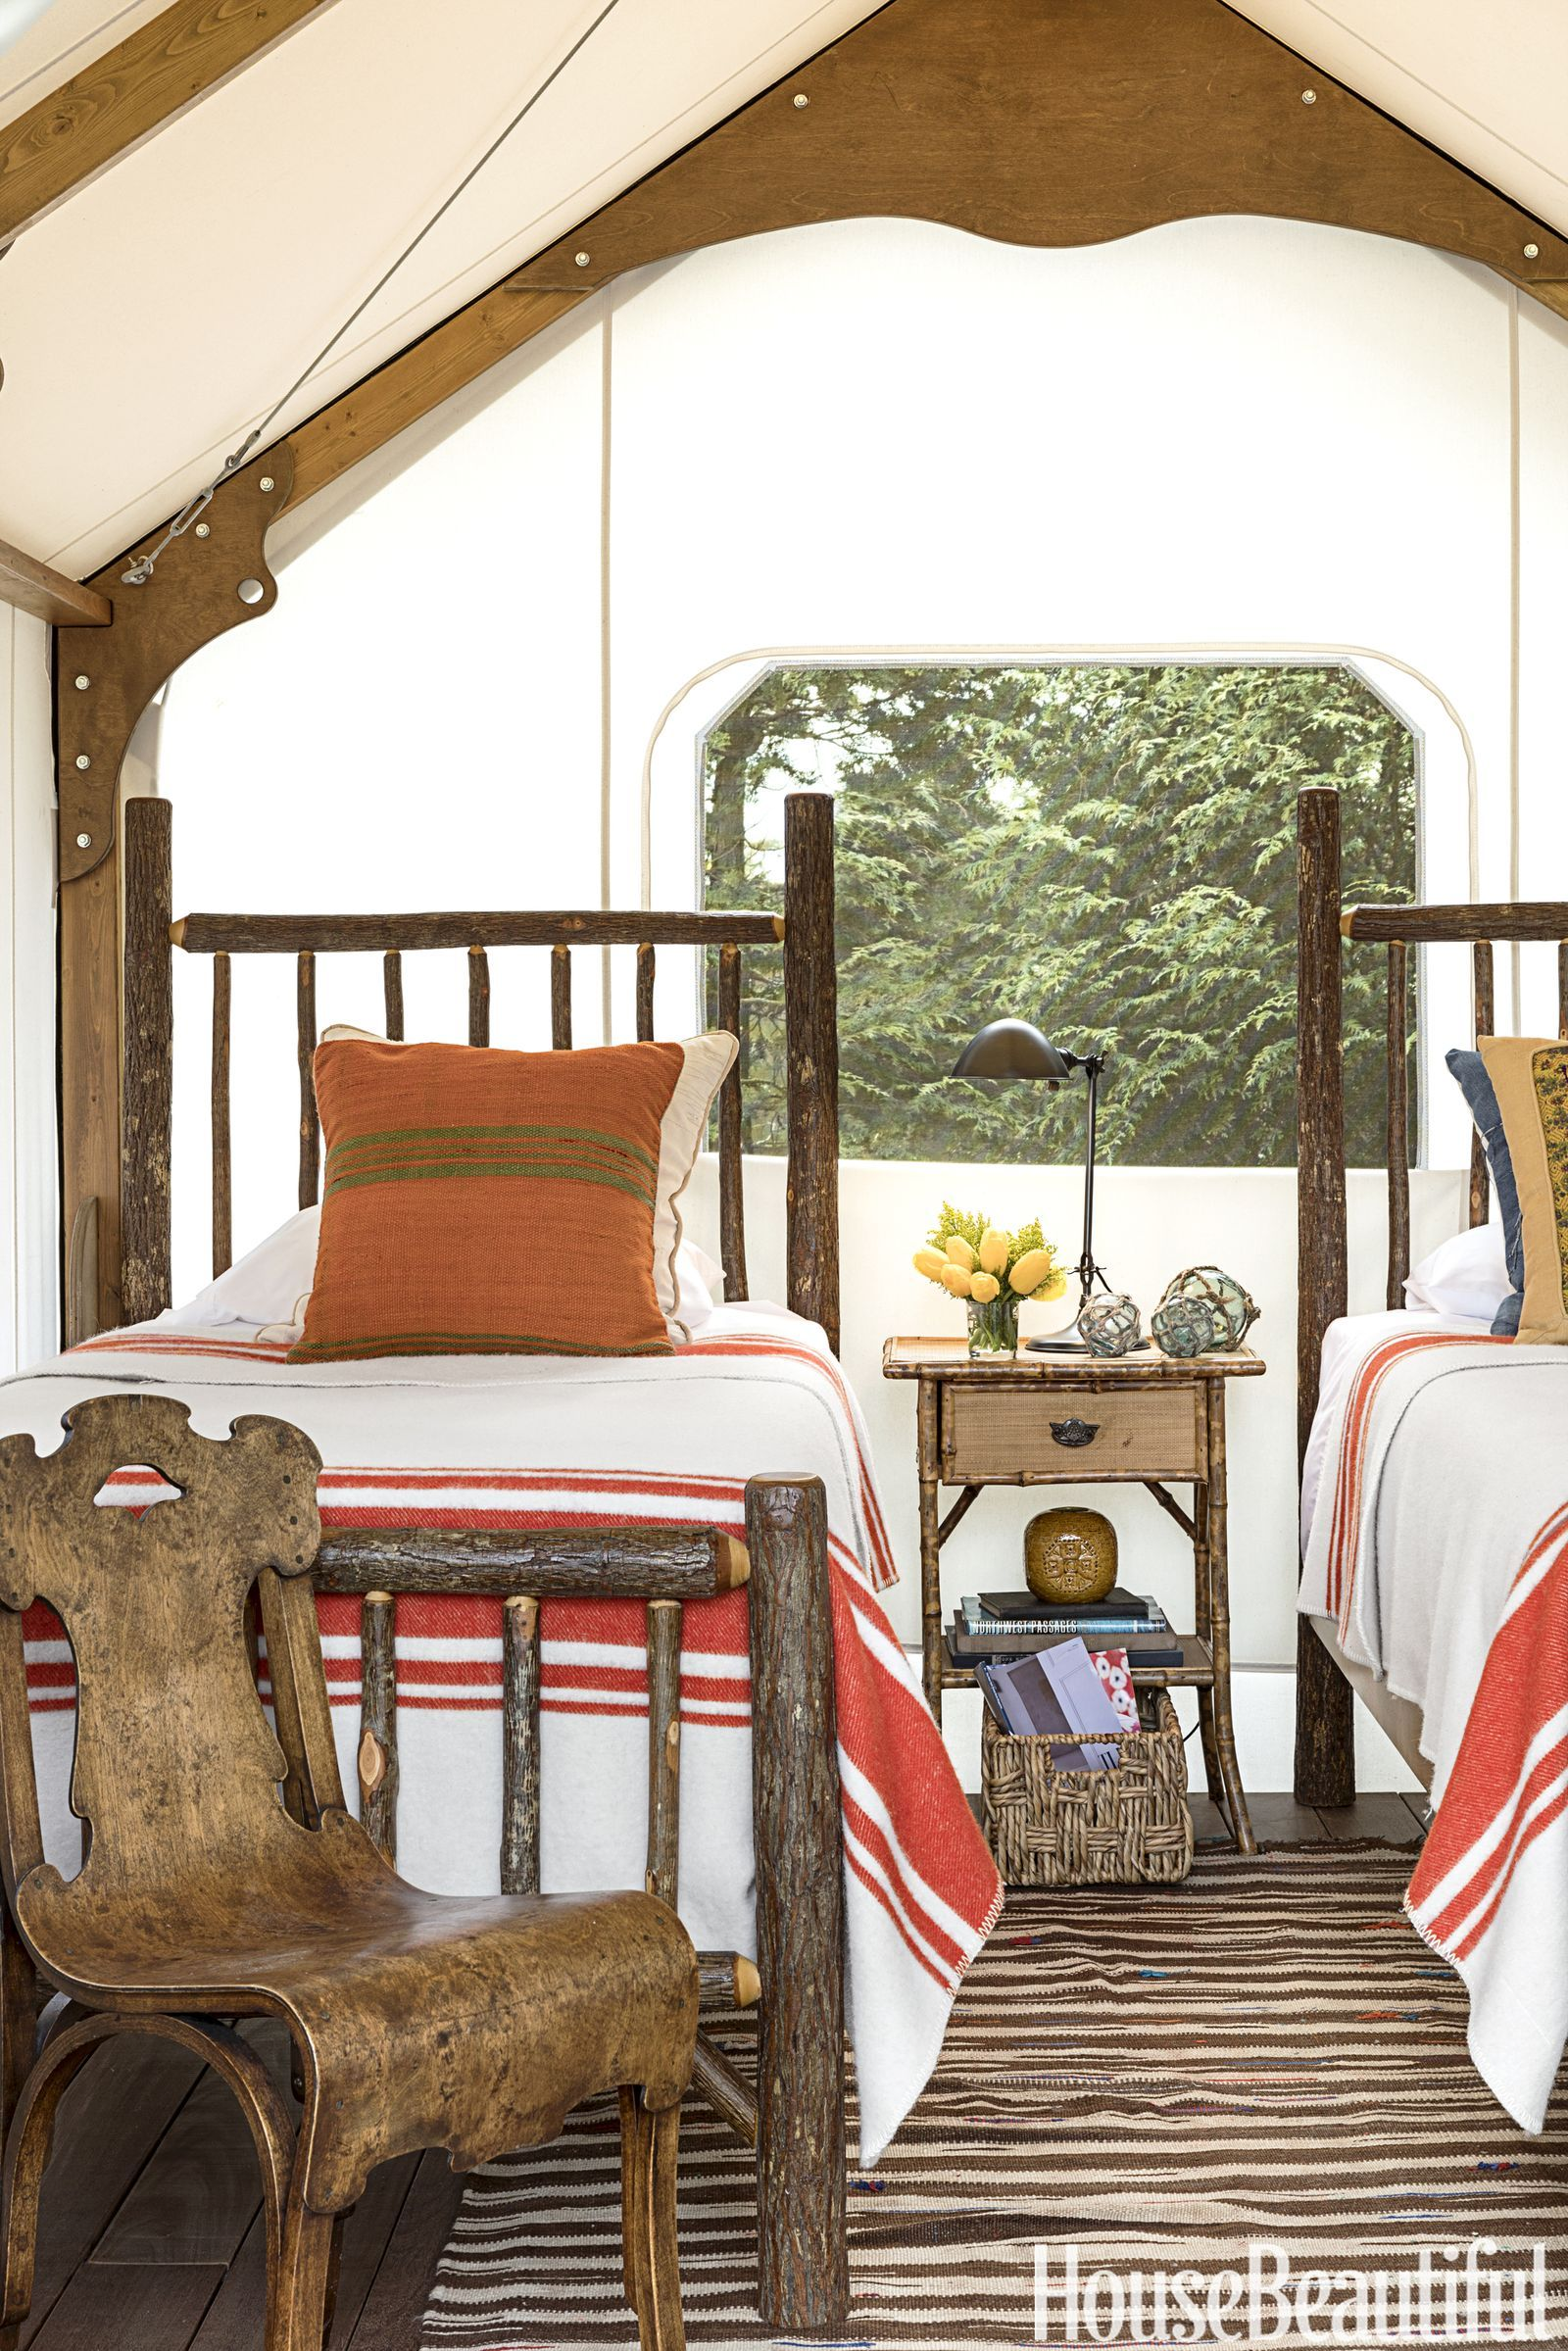 This Tiny Tent Village Is Basically Grownup Sleepaway